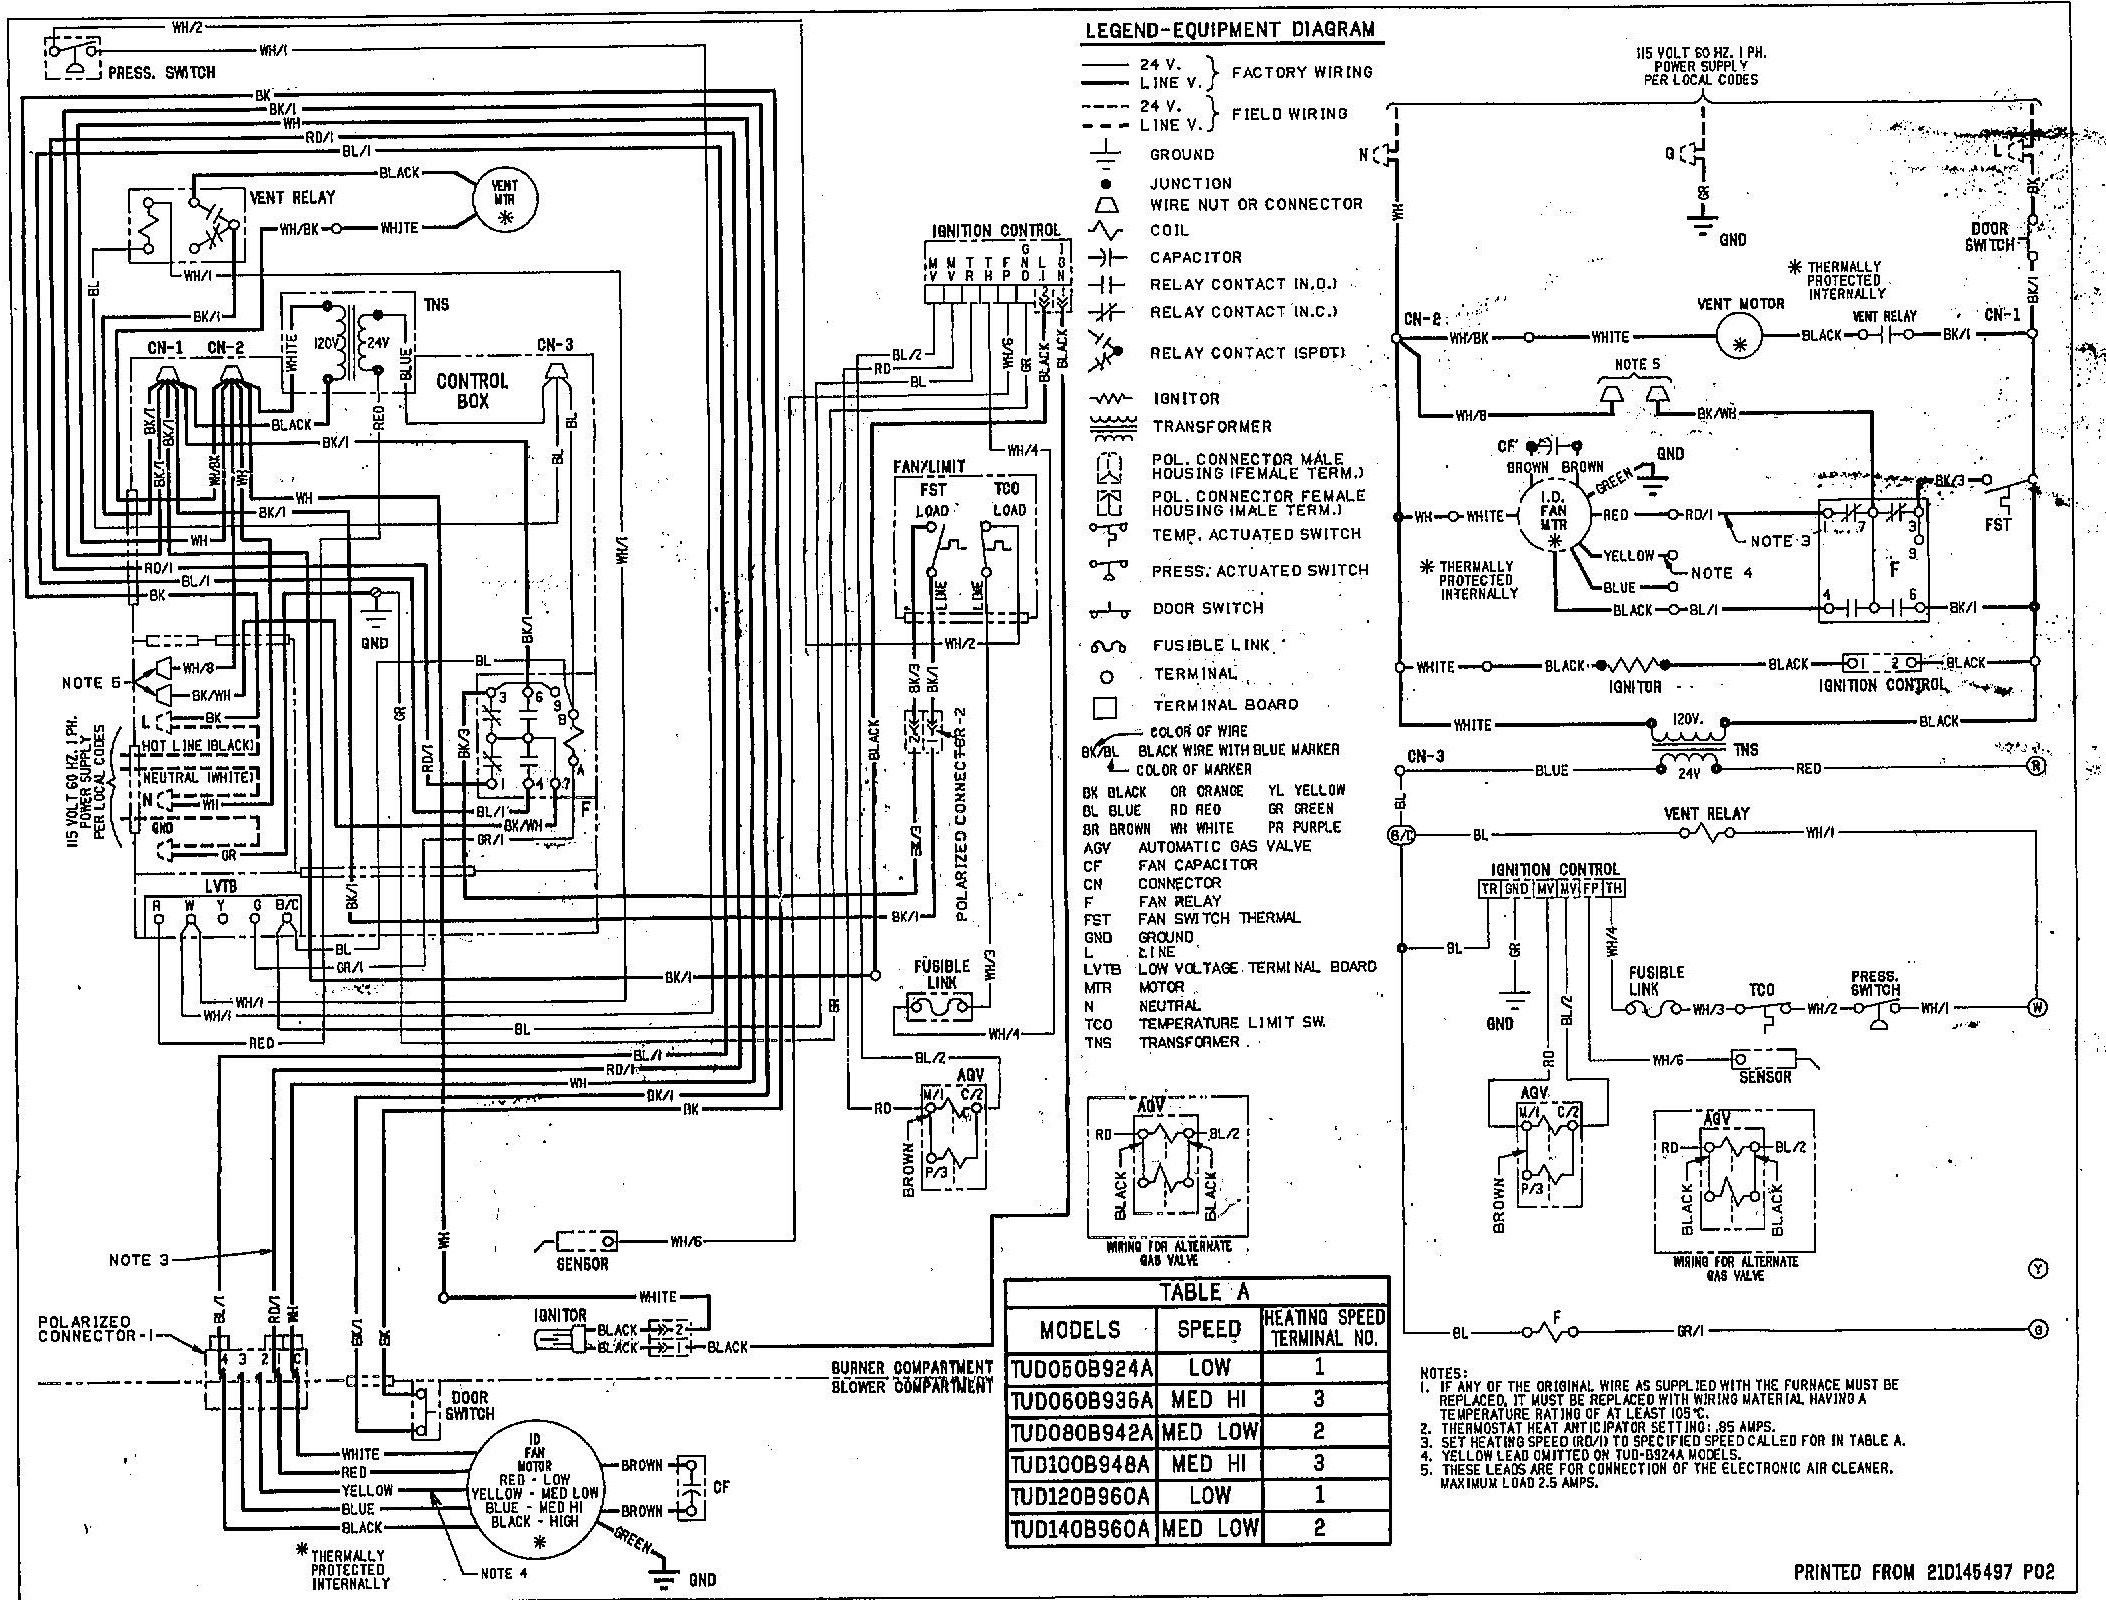 Wiring 24 Volt Unit Heater Library Of Diagrams 12 Circuit And Diagram Hub U2022 Rh Bdnewsmix Com Control Motor Guide